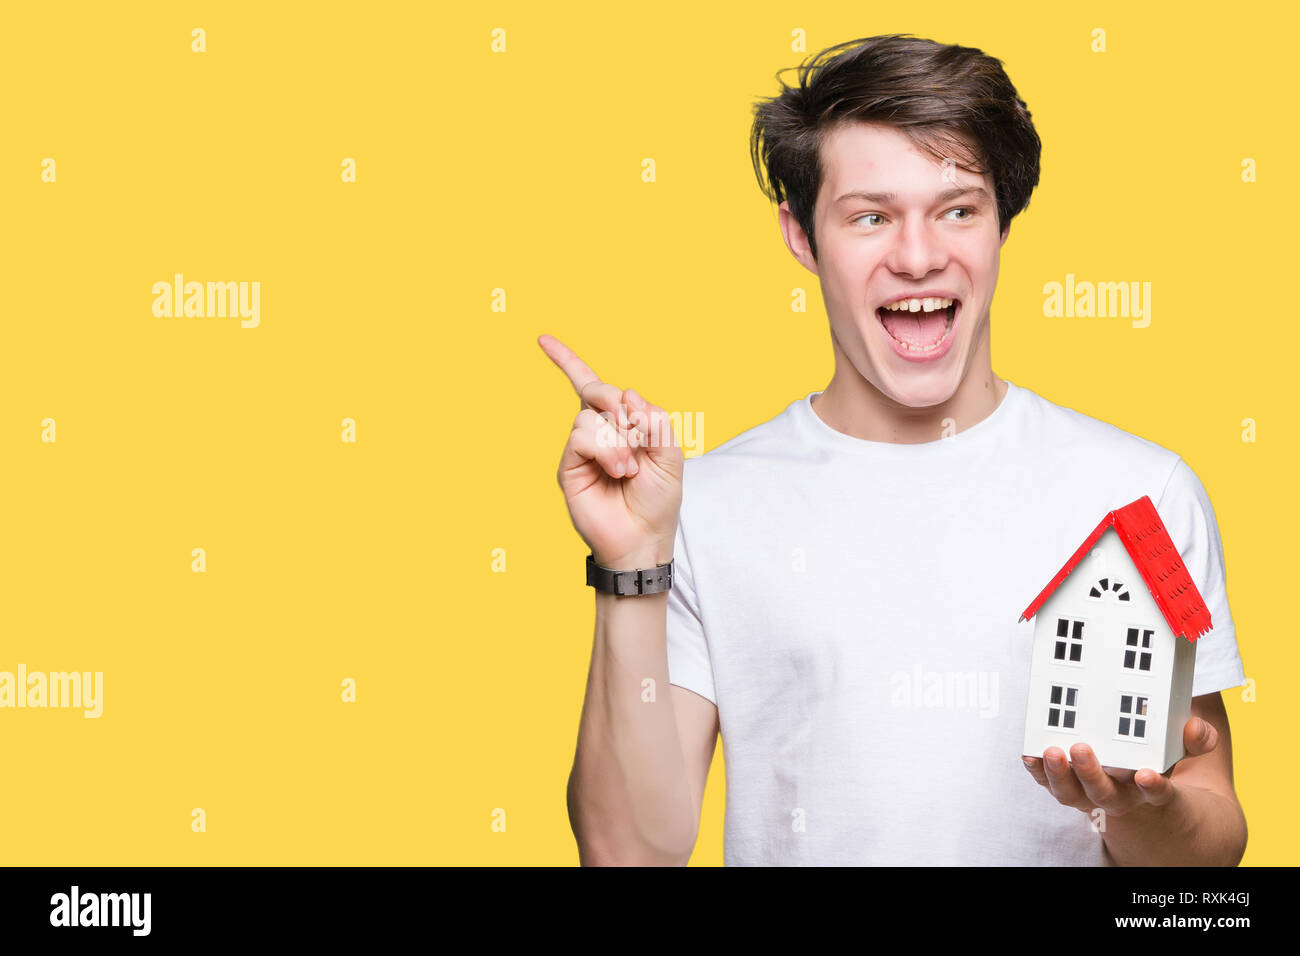 Young man holding house over isolated background very happy pointing with hand and finger to the side - Stock Image